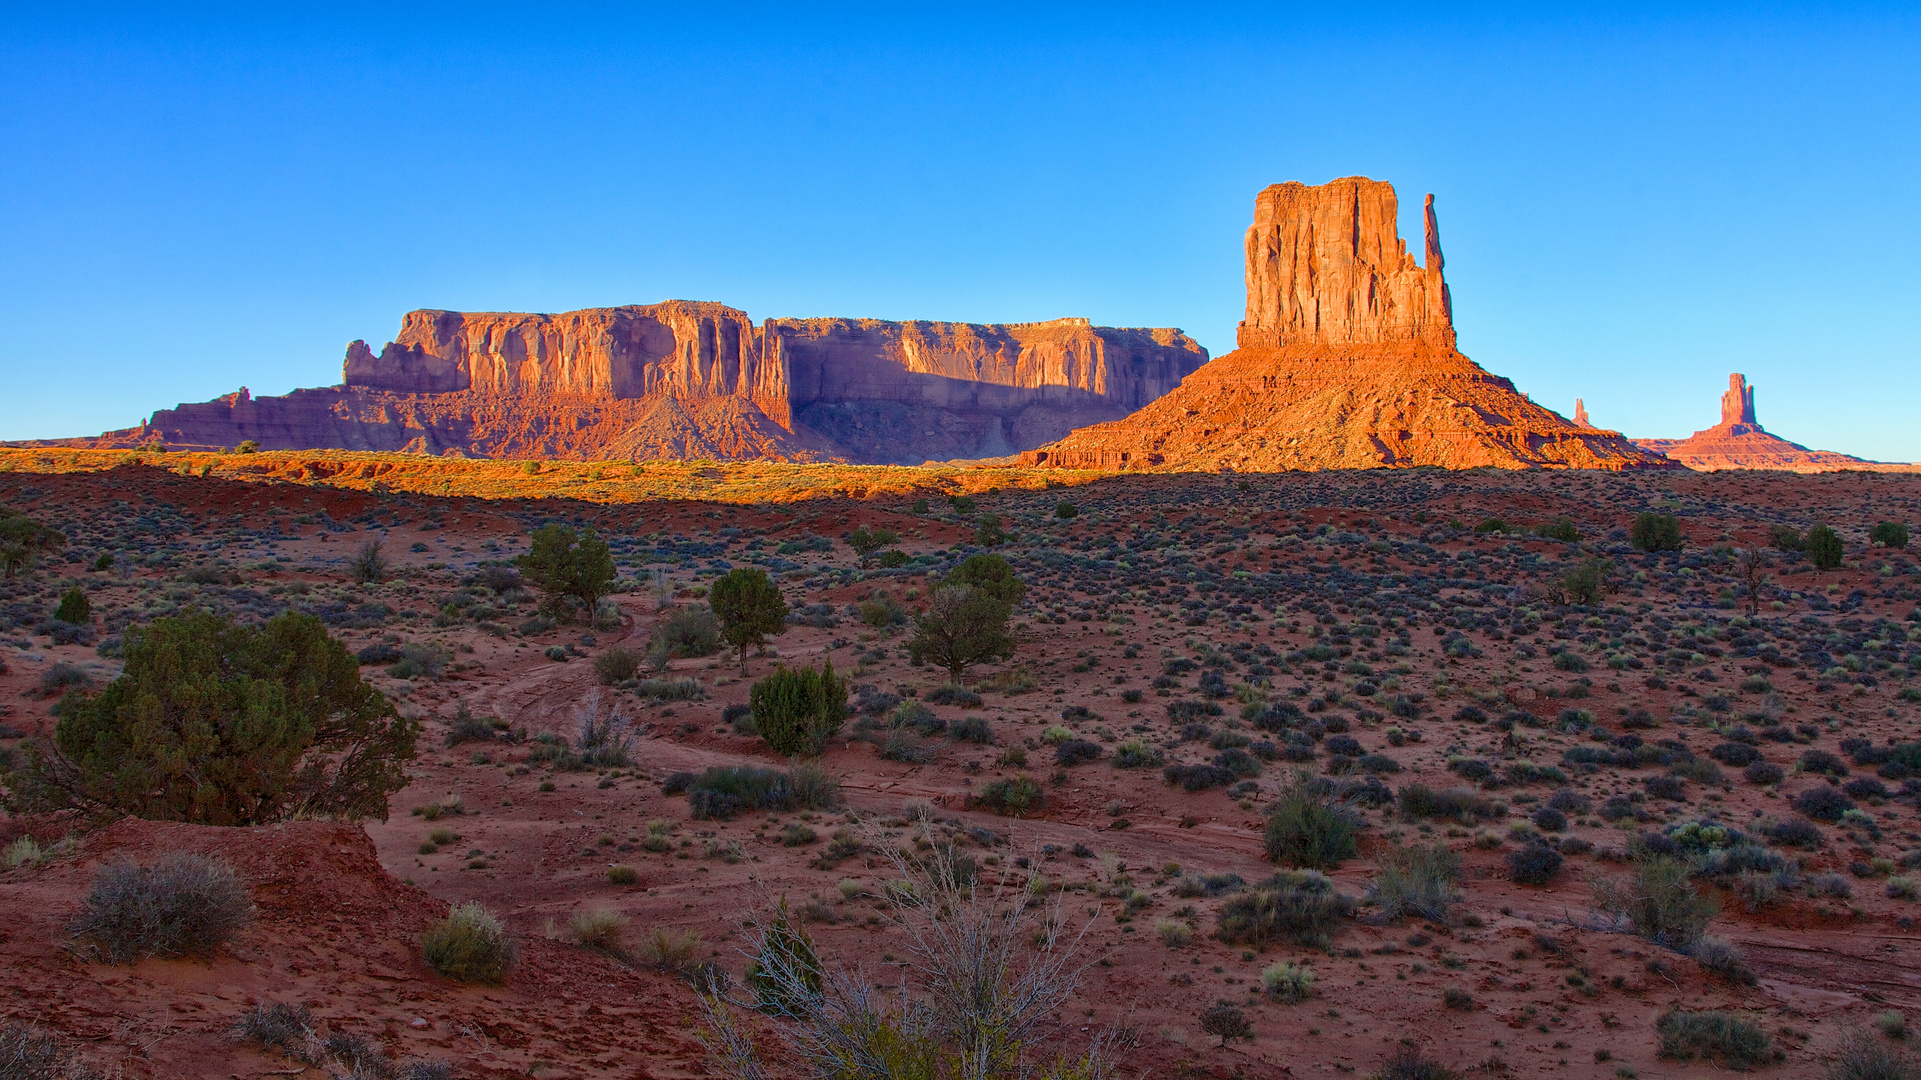 Evening view at Monument Valley